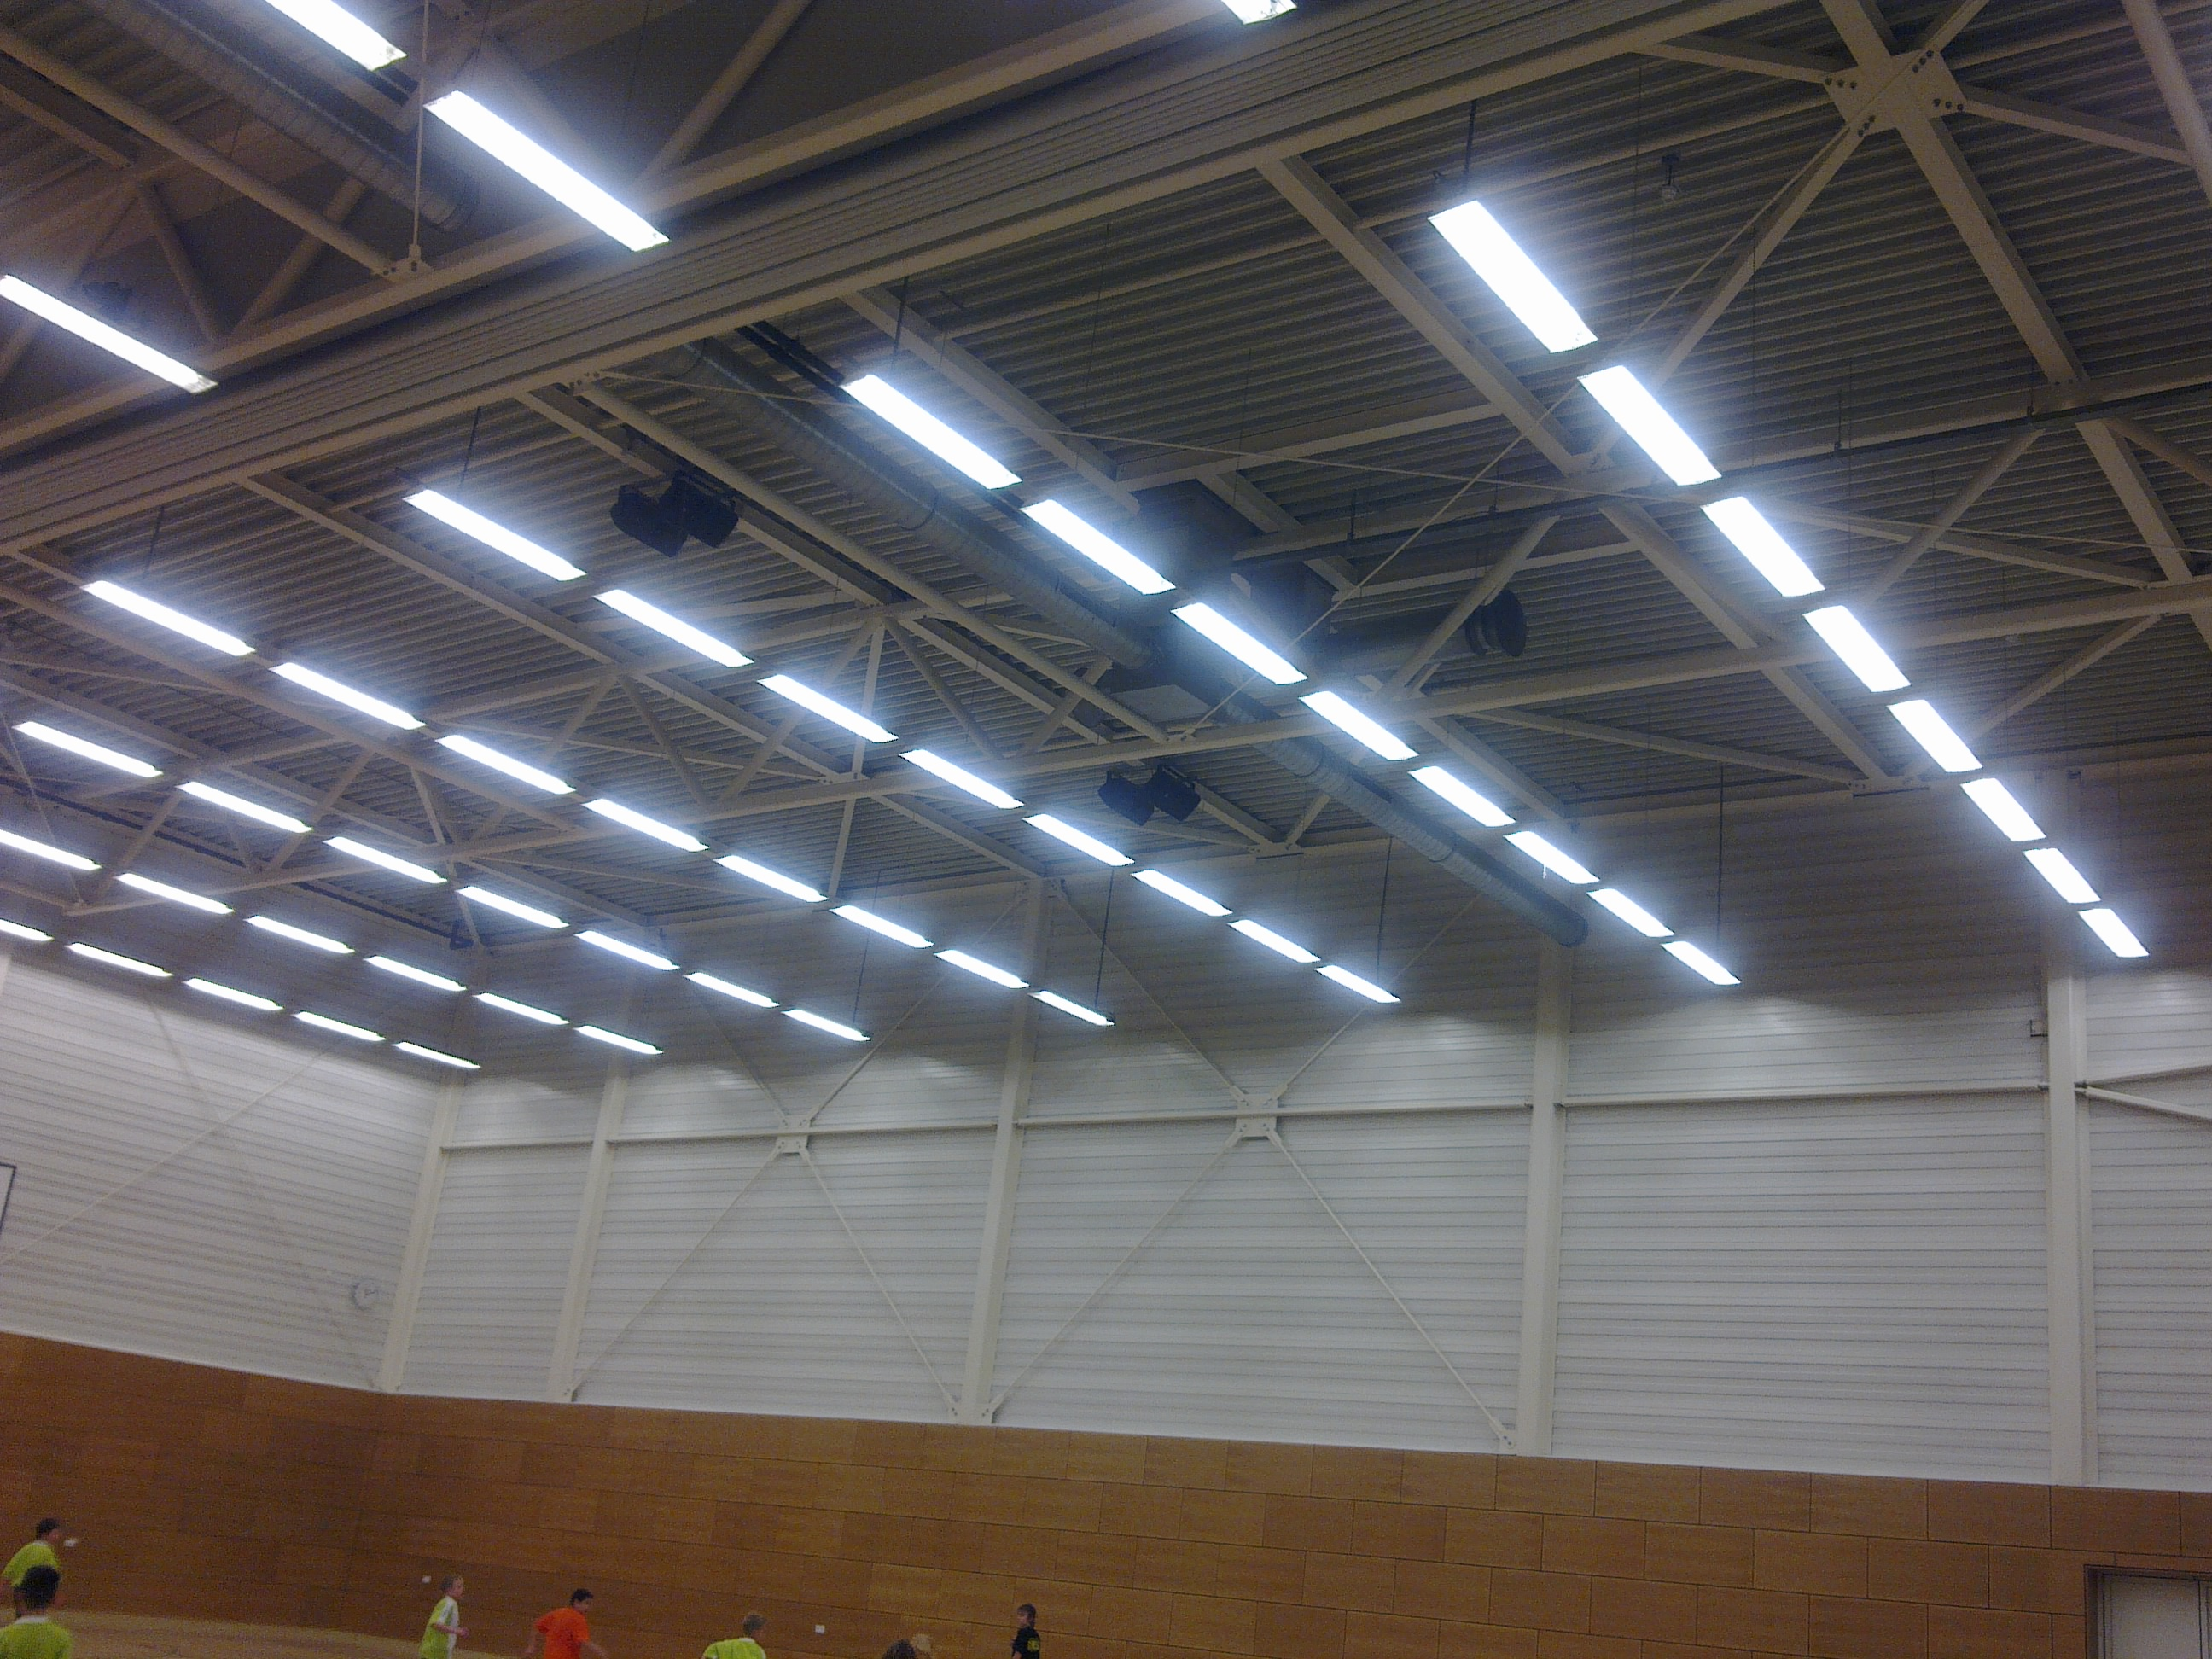 Norm Led Verlichting Sport Recreatie And Musea Feltor Lighting